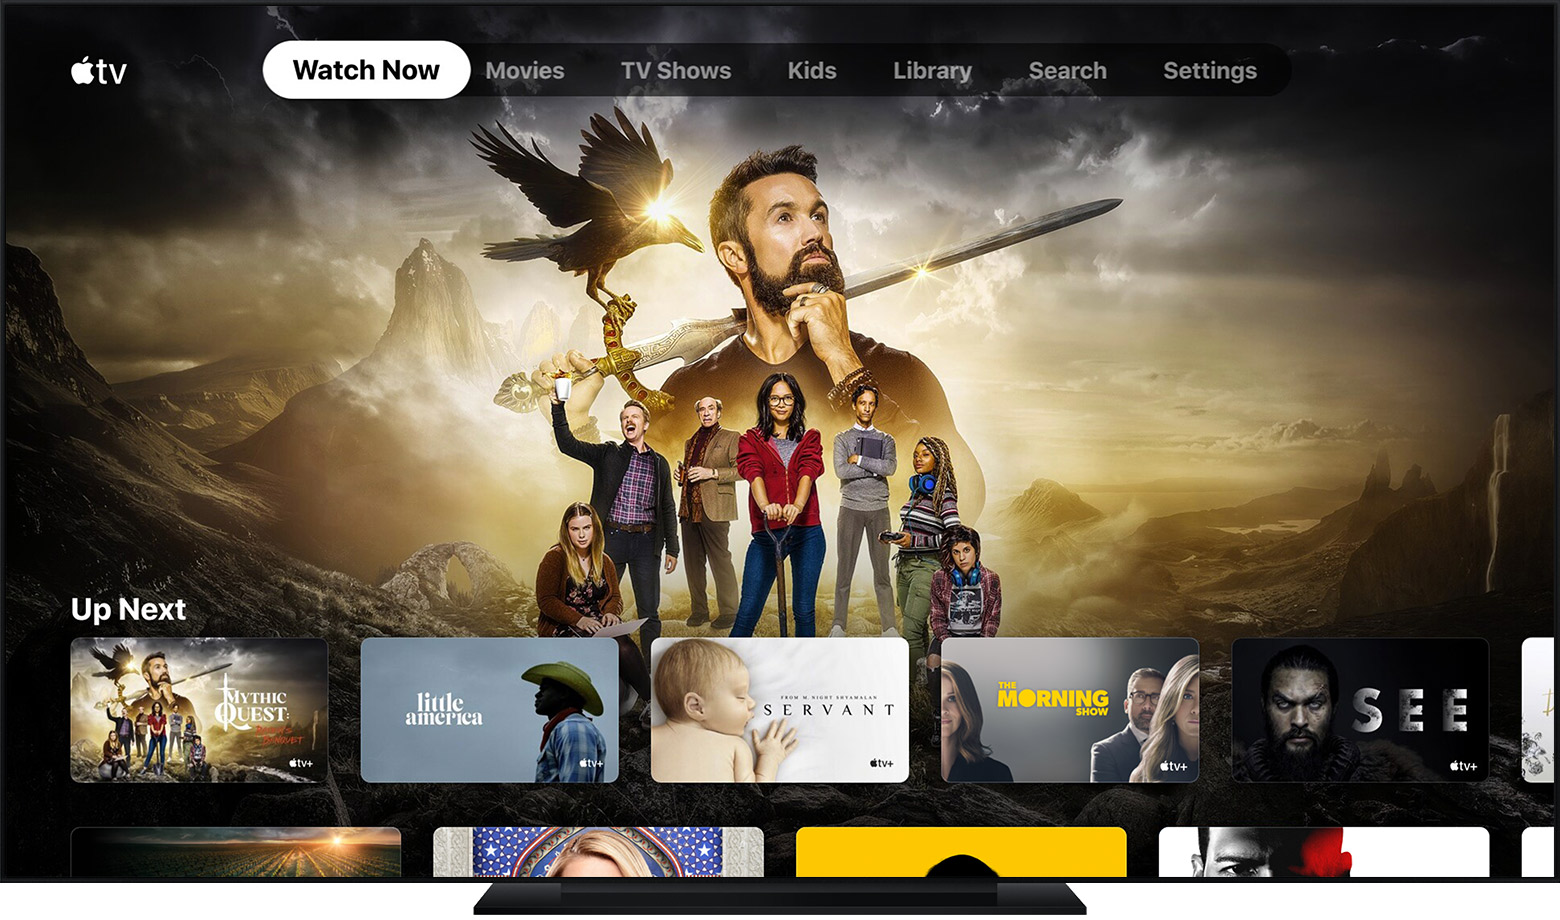 The Apple TV app comes to Sony's Android TVs